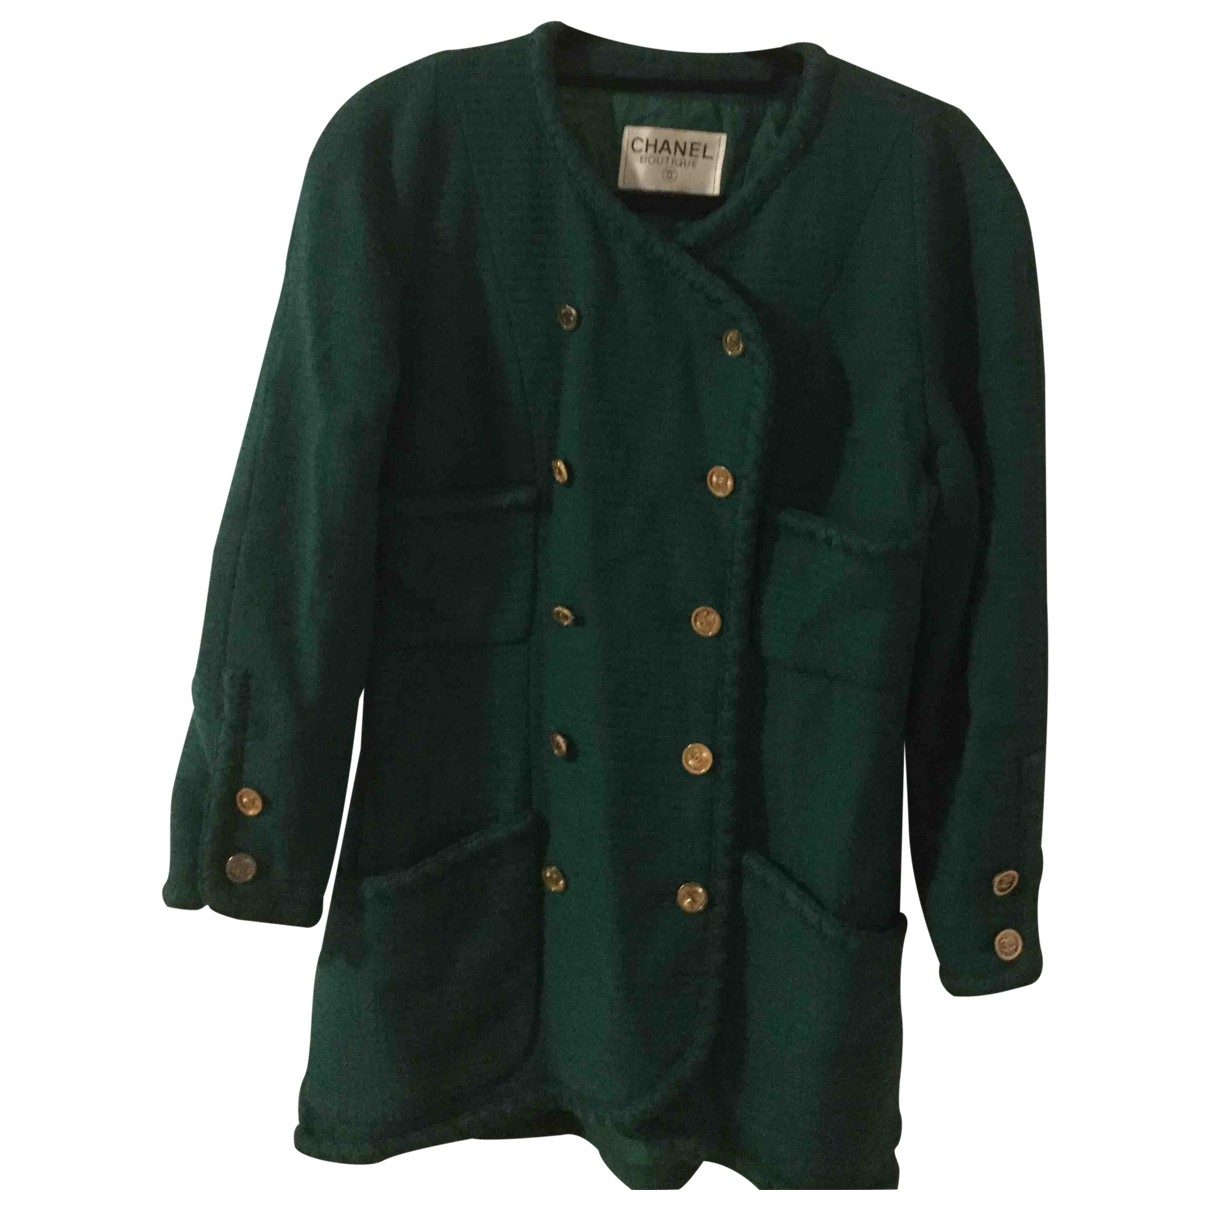 Chanel \N Green Cotton jacket for Women 38 FR